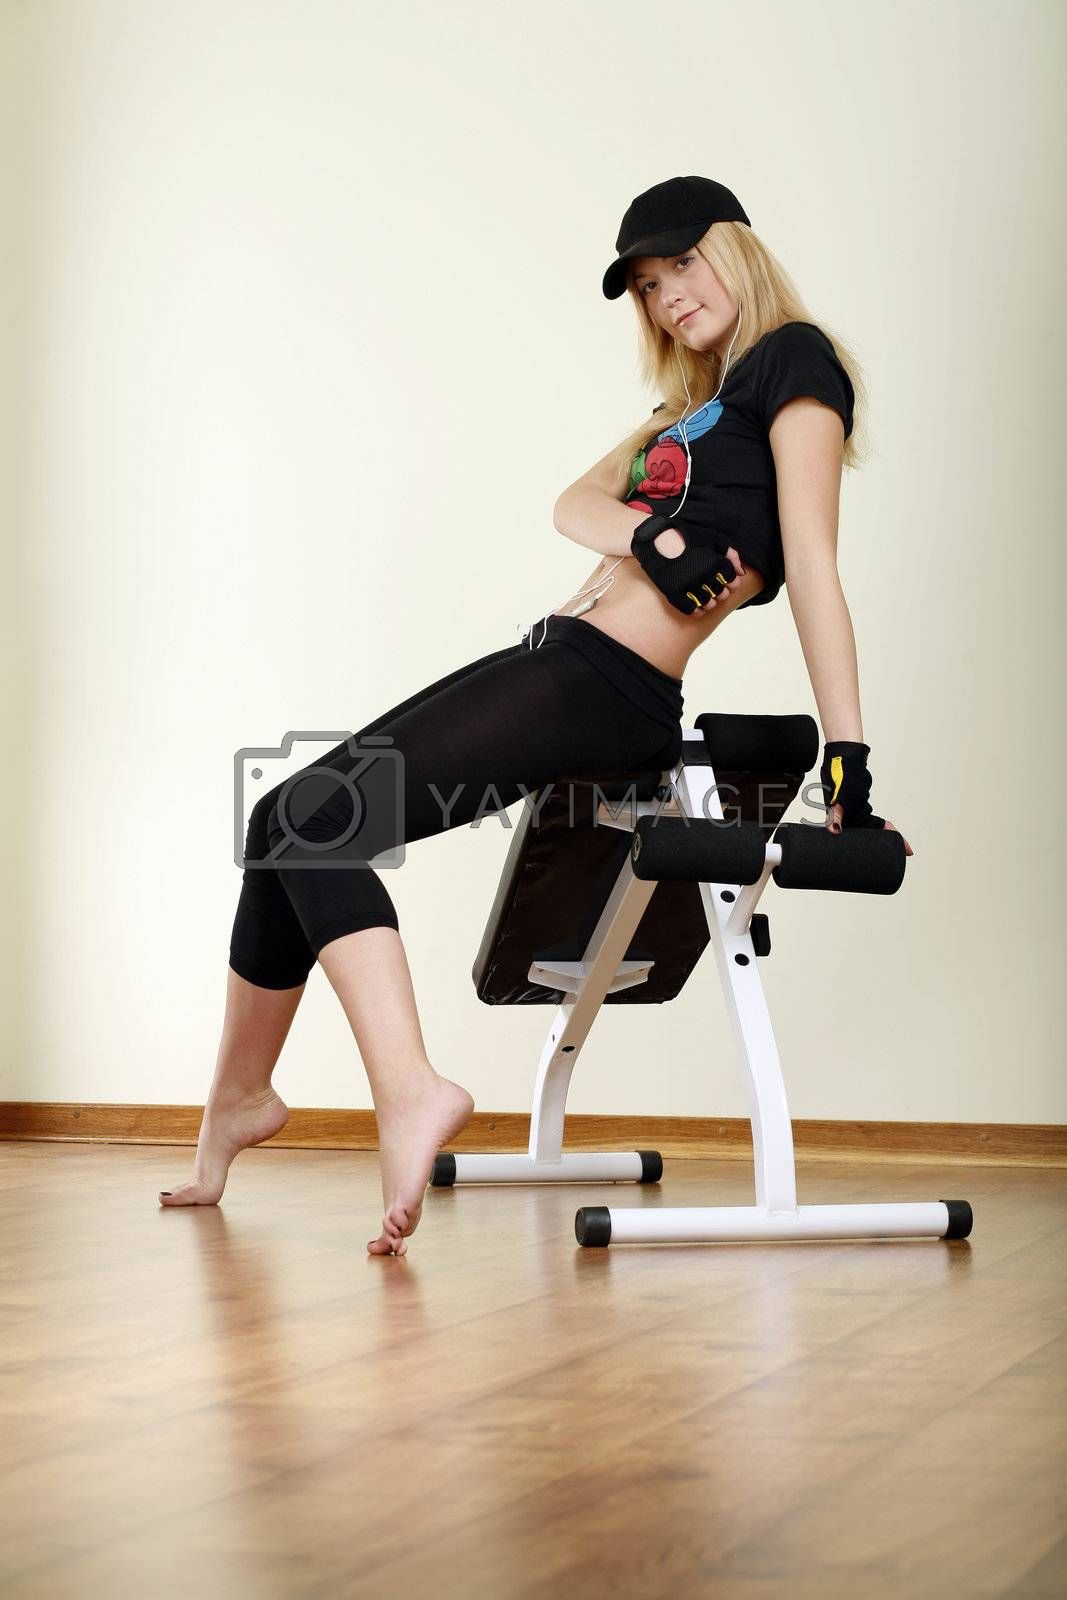 girl in cap sitting on fitness machine